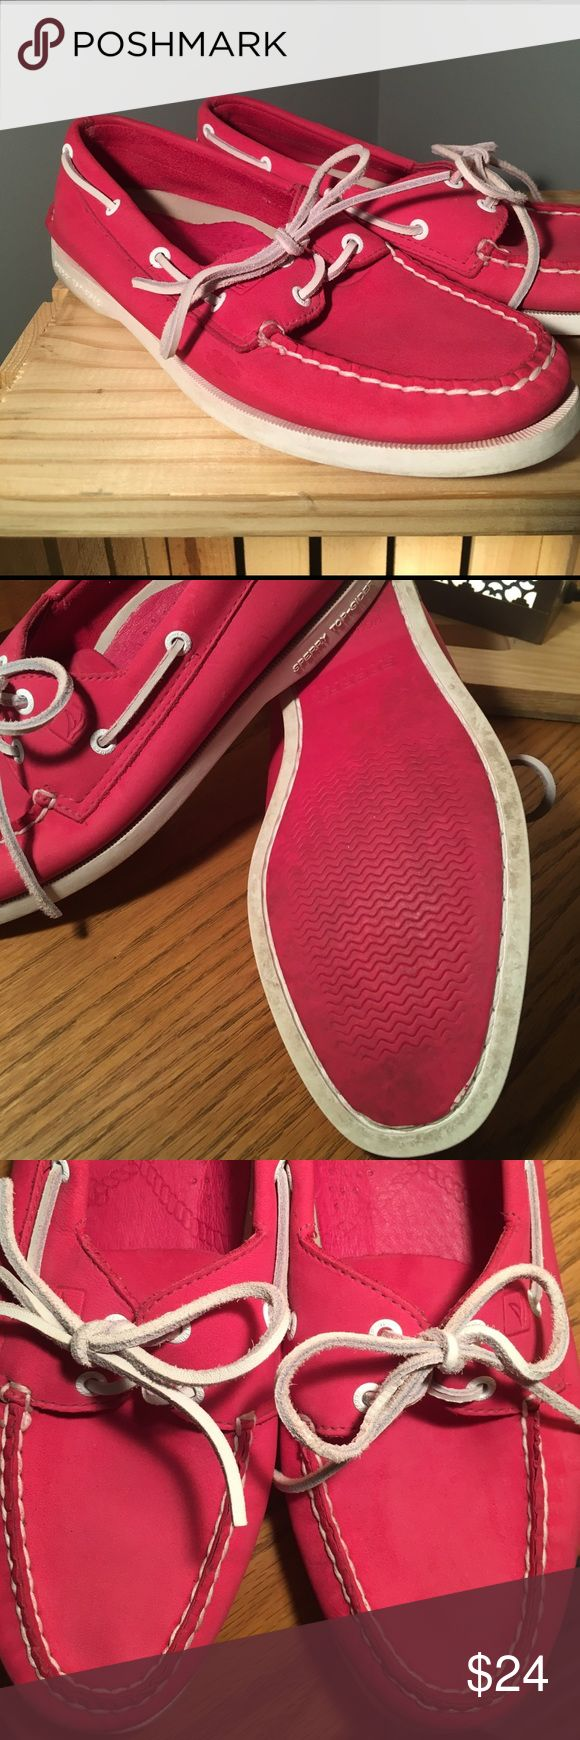 PINK SPERRY'S!!!!!!! Pink and White leather top-slider Sperrys!! These are sooo super cute! GUC, only wore a handful of times. Size 8.5m and true to size.  Smoke free and pet friendly home!! Sperry Top-Sider Shoes Flats & Loafers